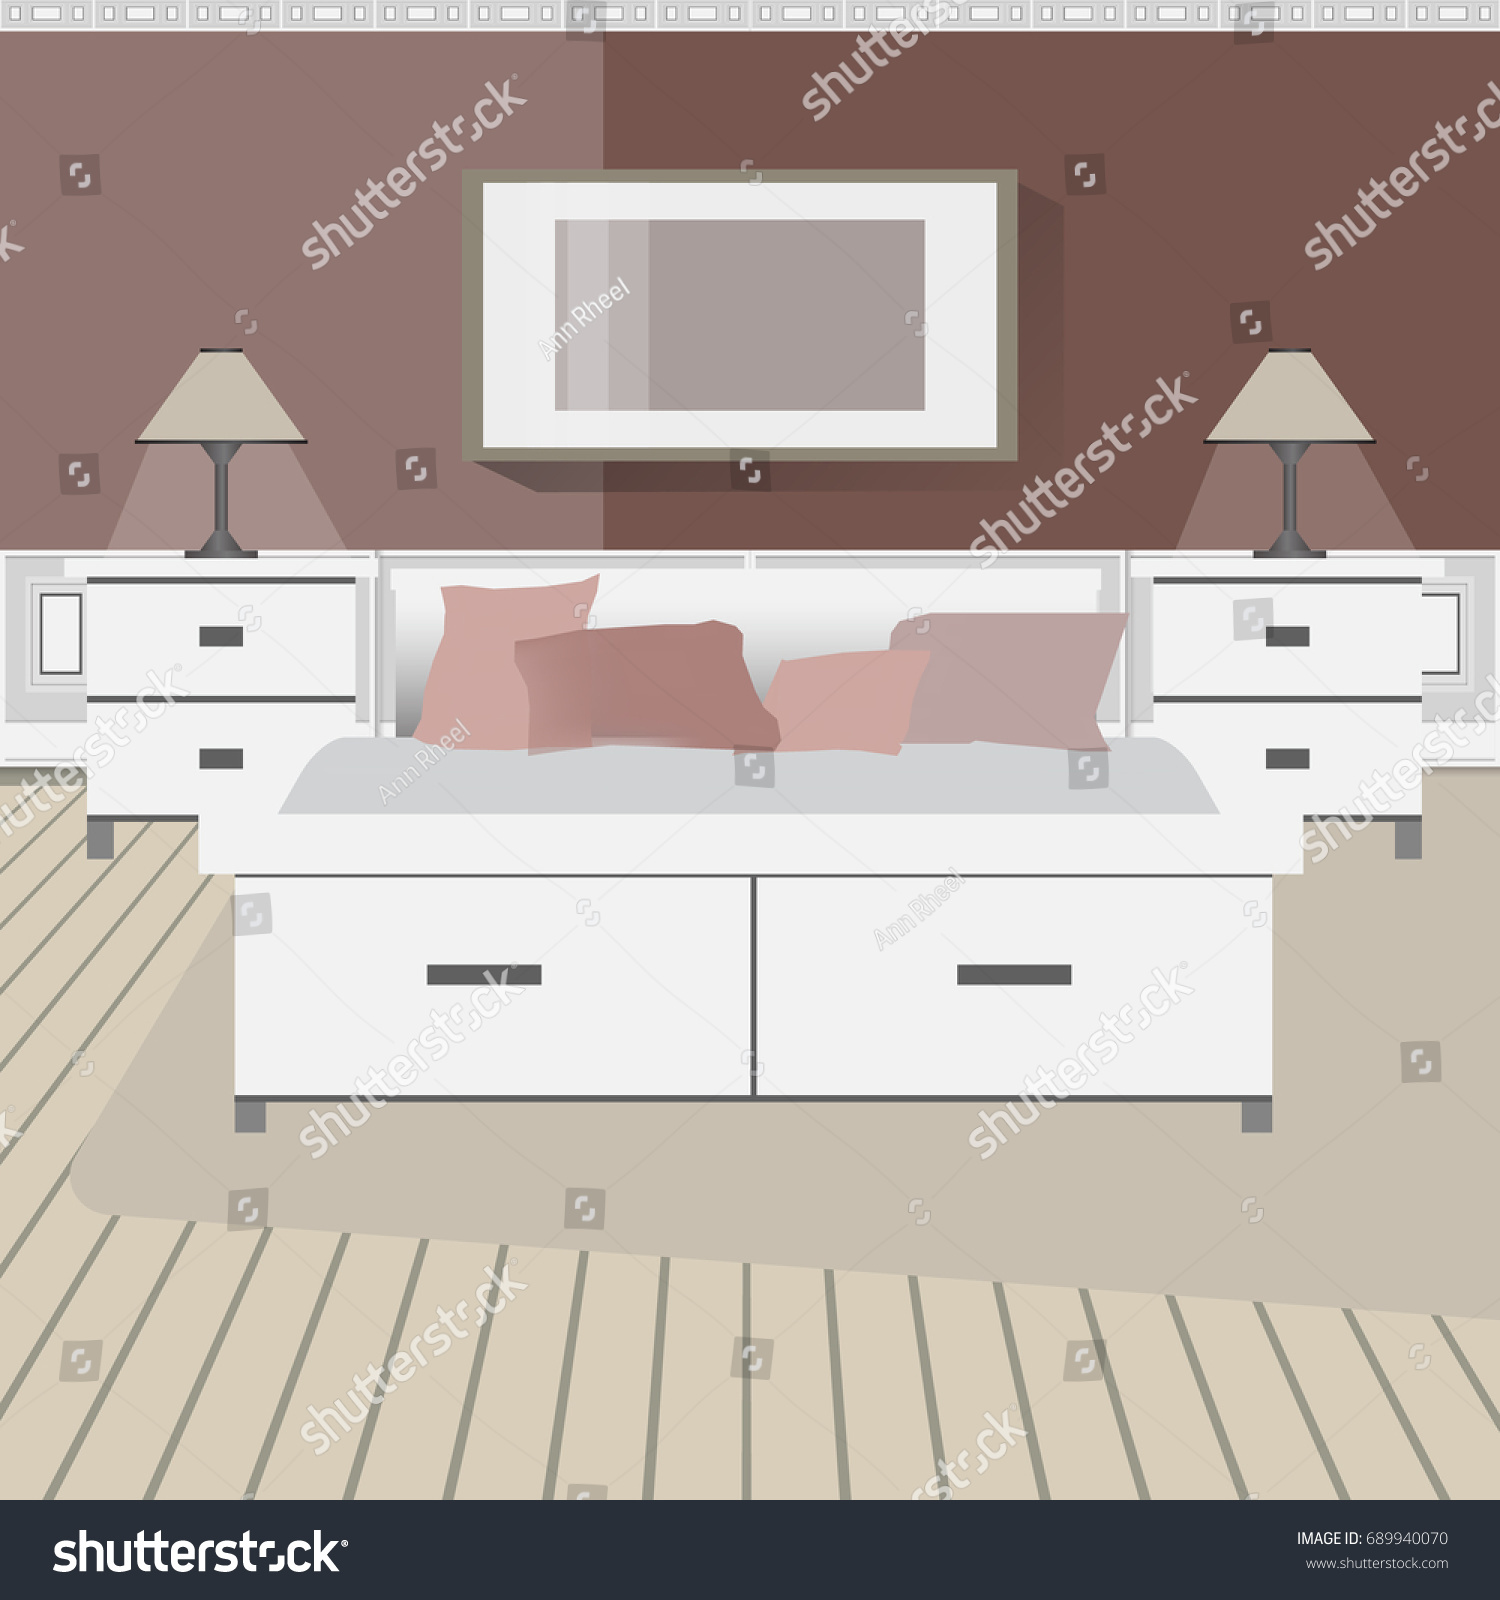 Design Modern Workplace Bedroom Other Objects Stock Vector 689940070 ...